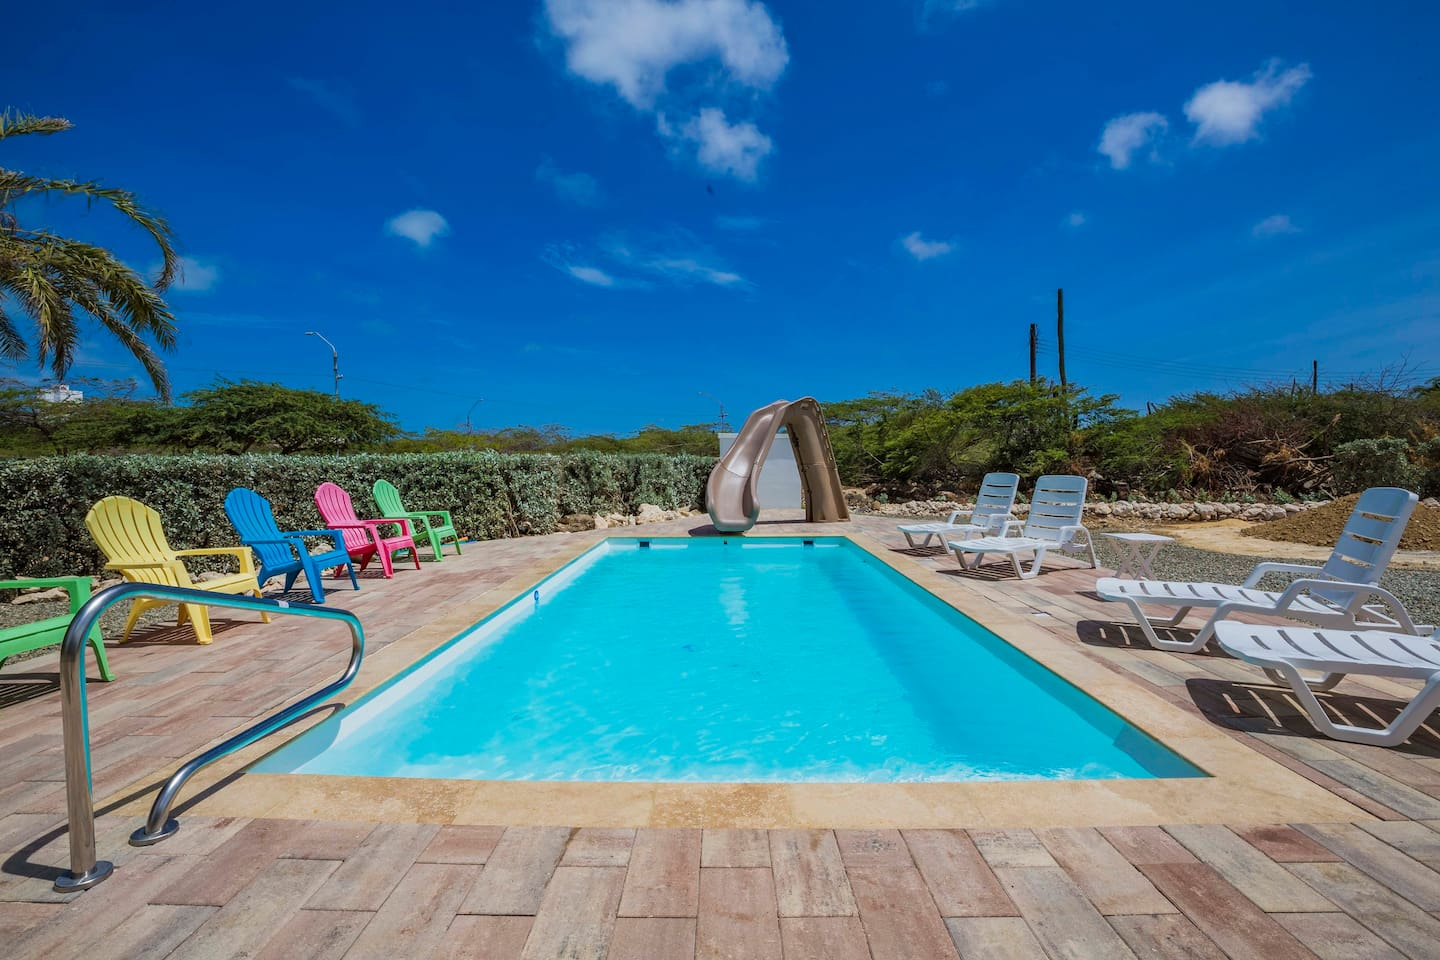 Large Beautiful Pool under the Sun with great slide for adults and kids. Lounge Chairs and Colorful Chairs